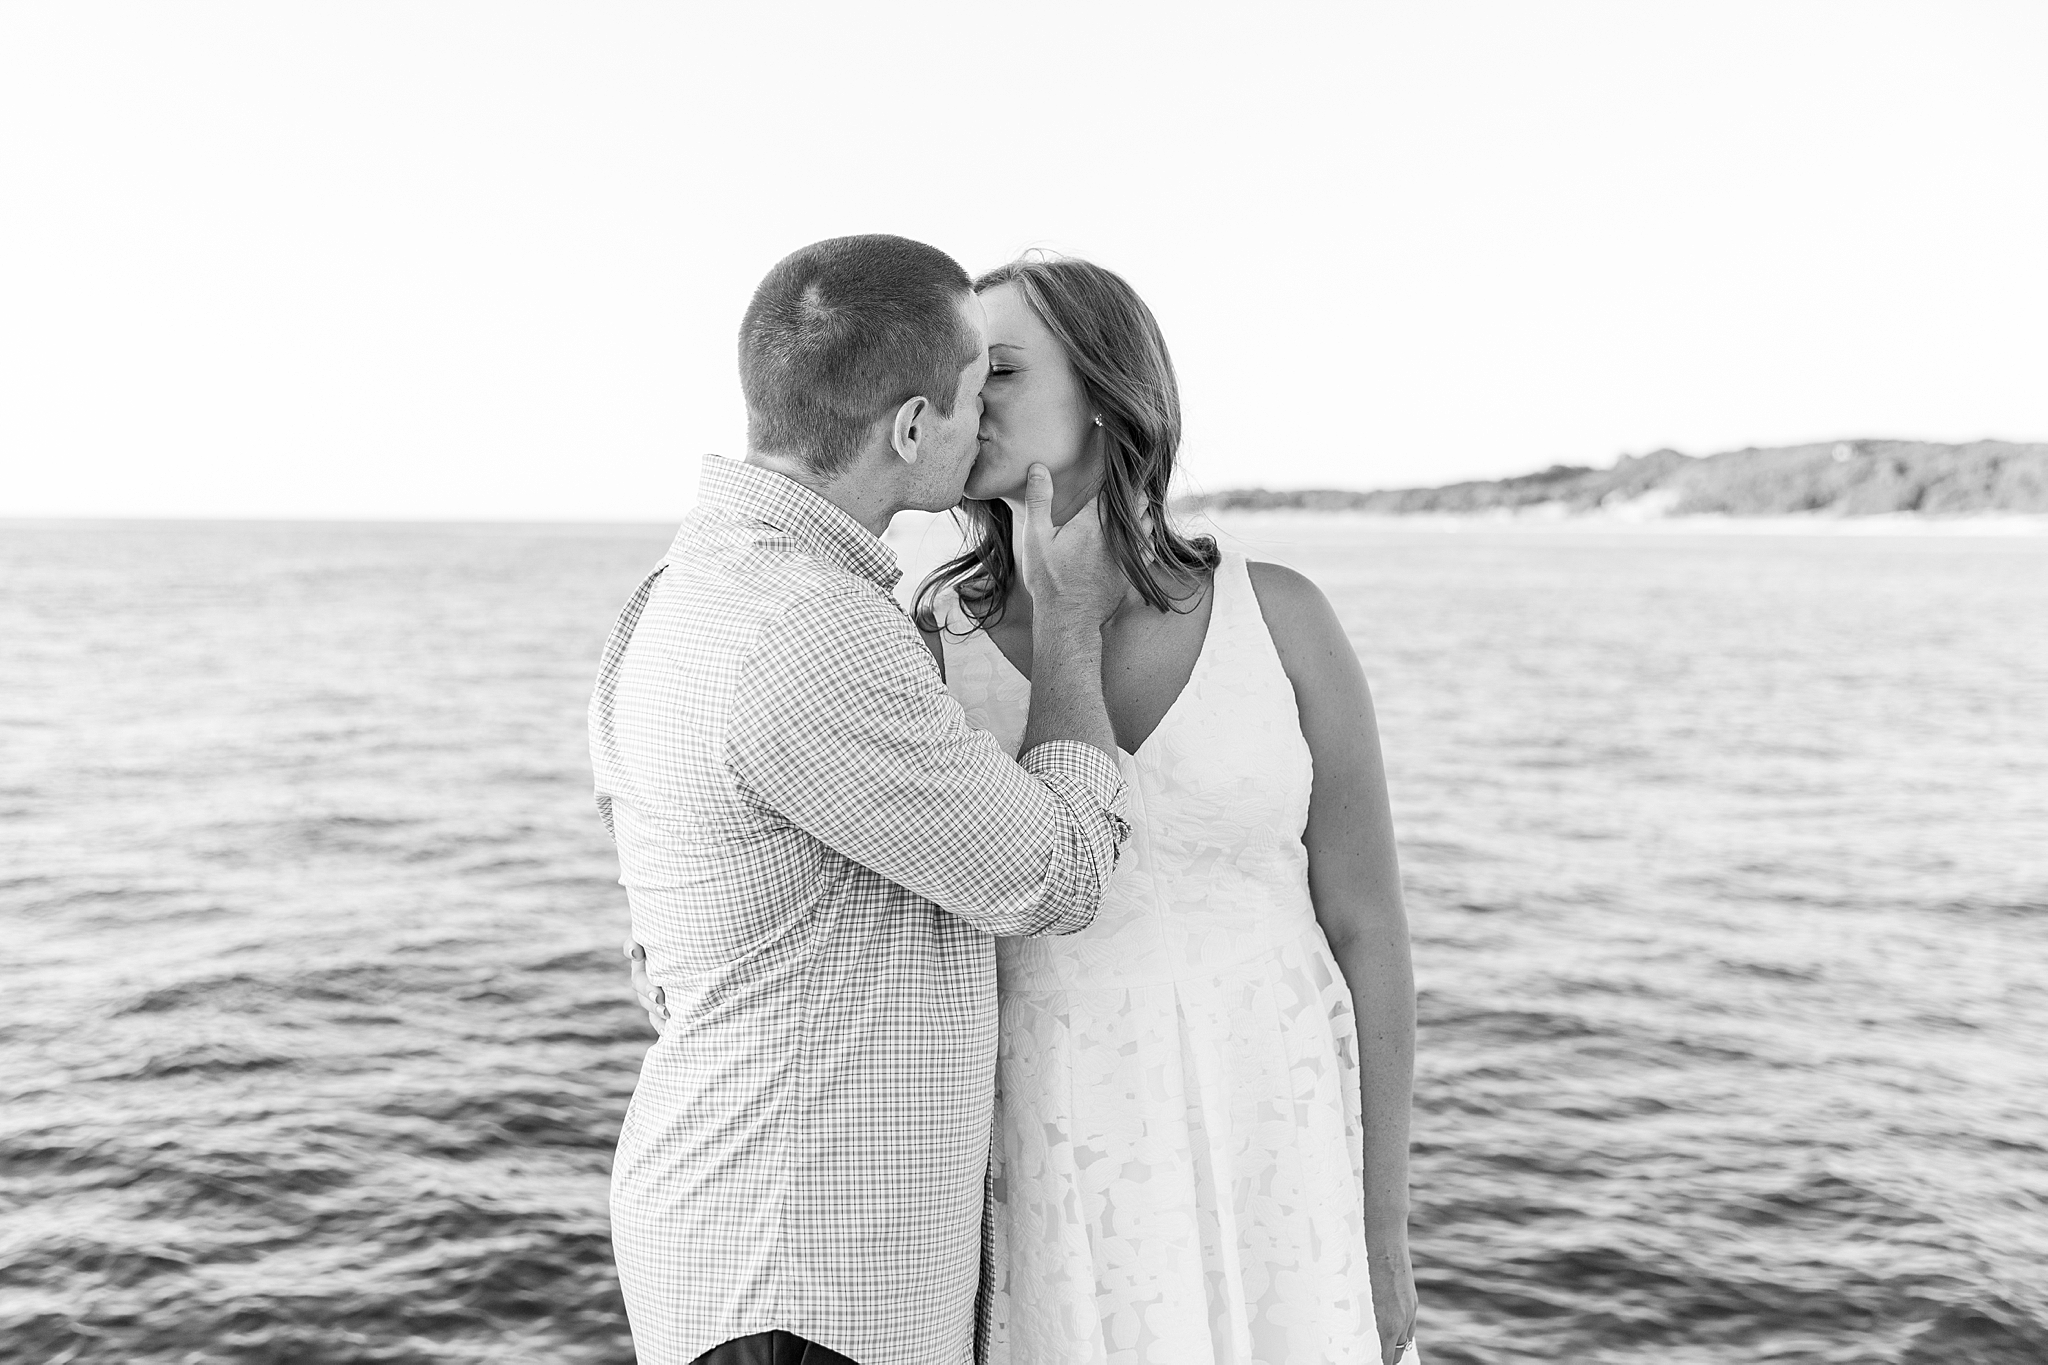 waterfront-lighthouse-engagement-photography-in-charlevoix-mi-by-courtney-carolyn-photography_0006.jpg